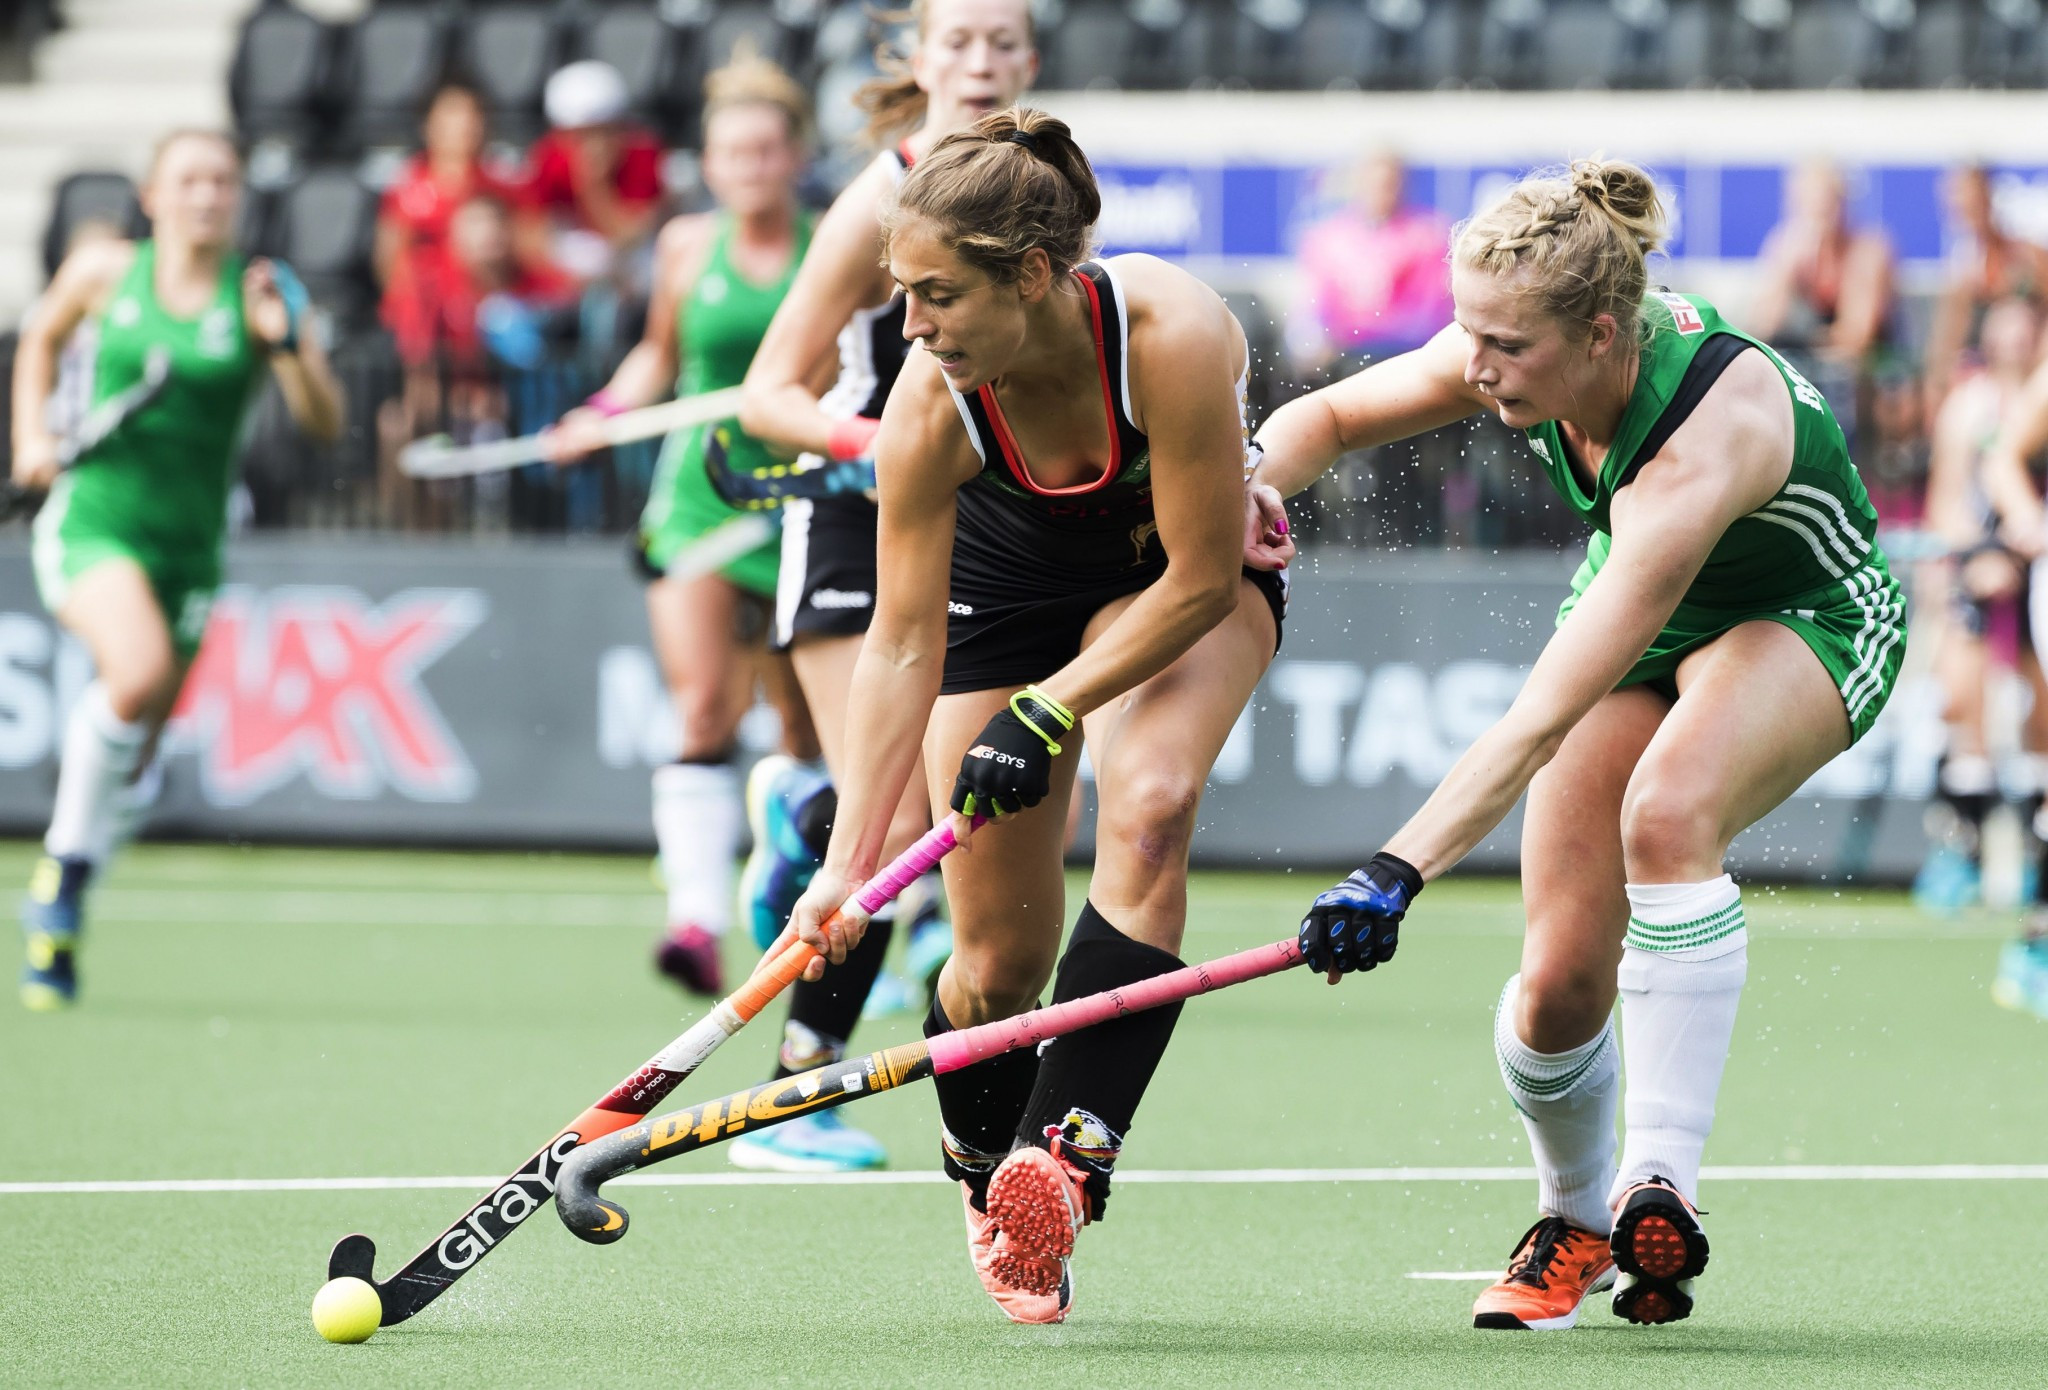 Germany secured top spot in Pool B with a 5-1 victory over Ireland ©Getty Images